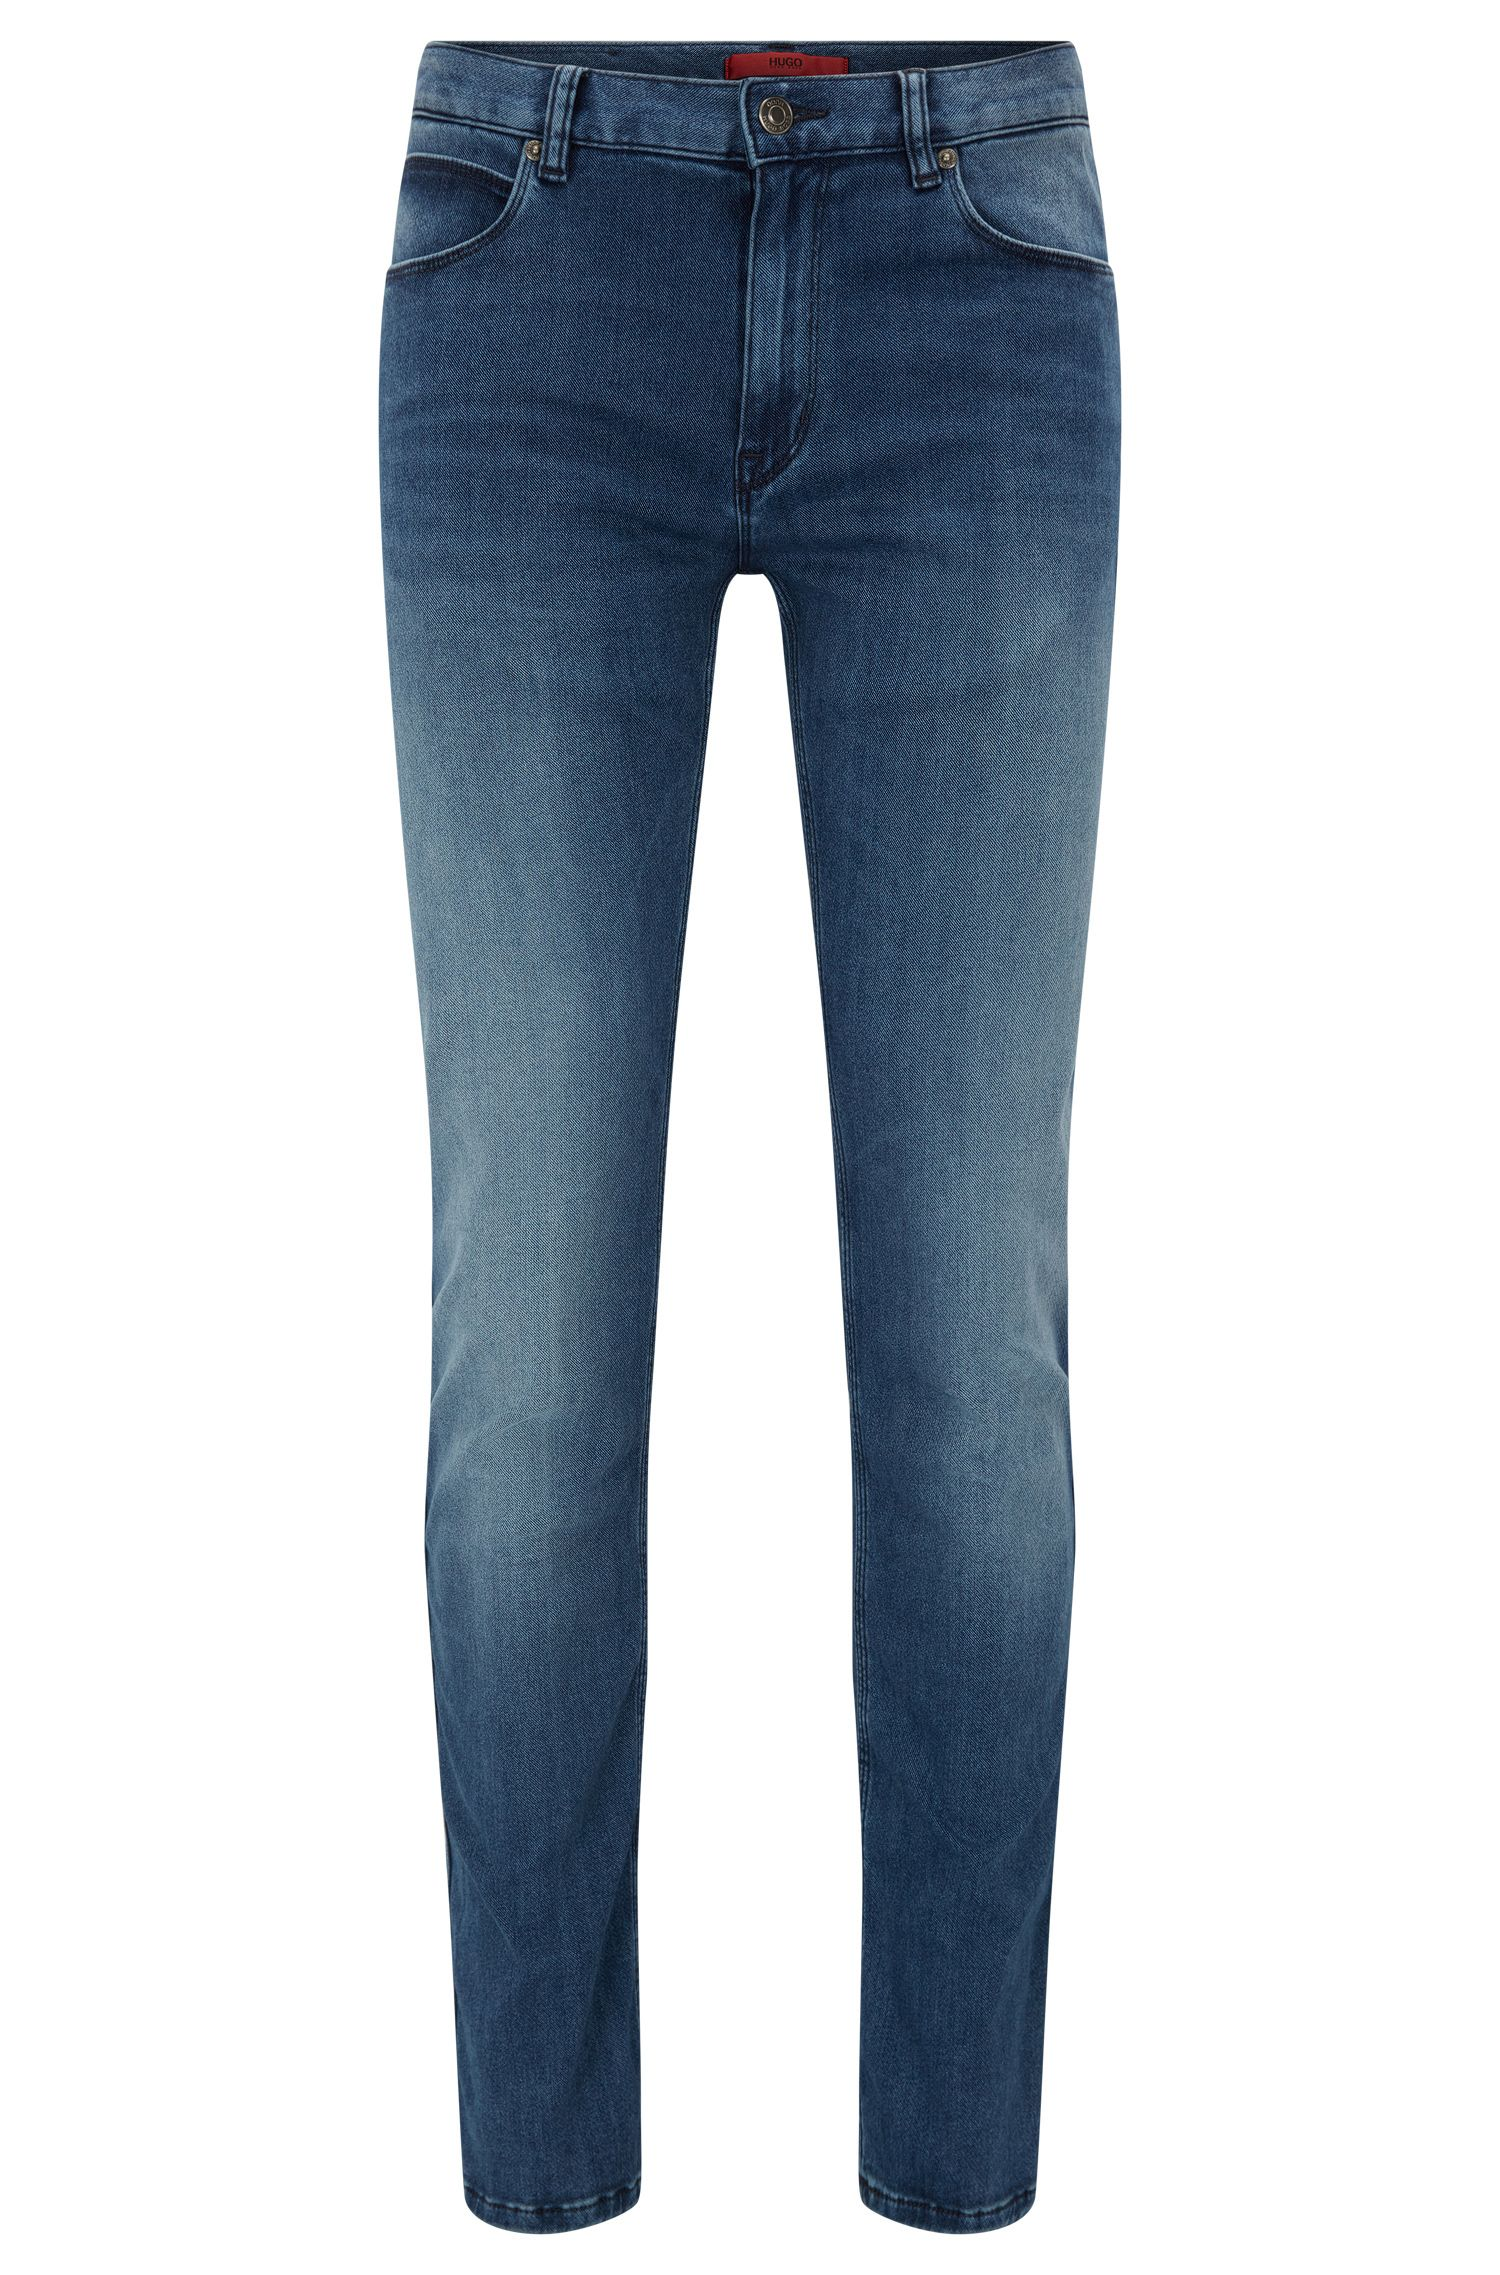 Jeans Slim Fit en denim ultra stretch stone-washed